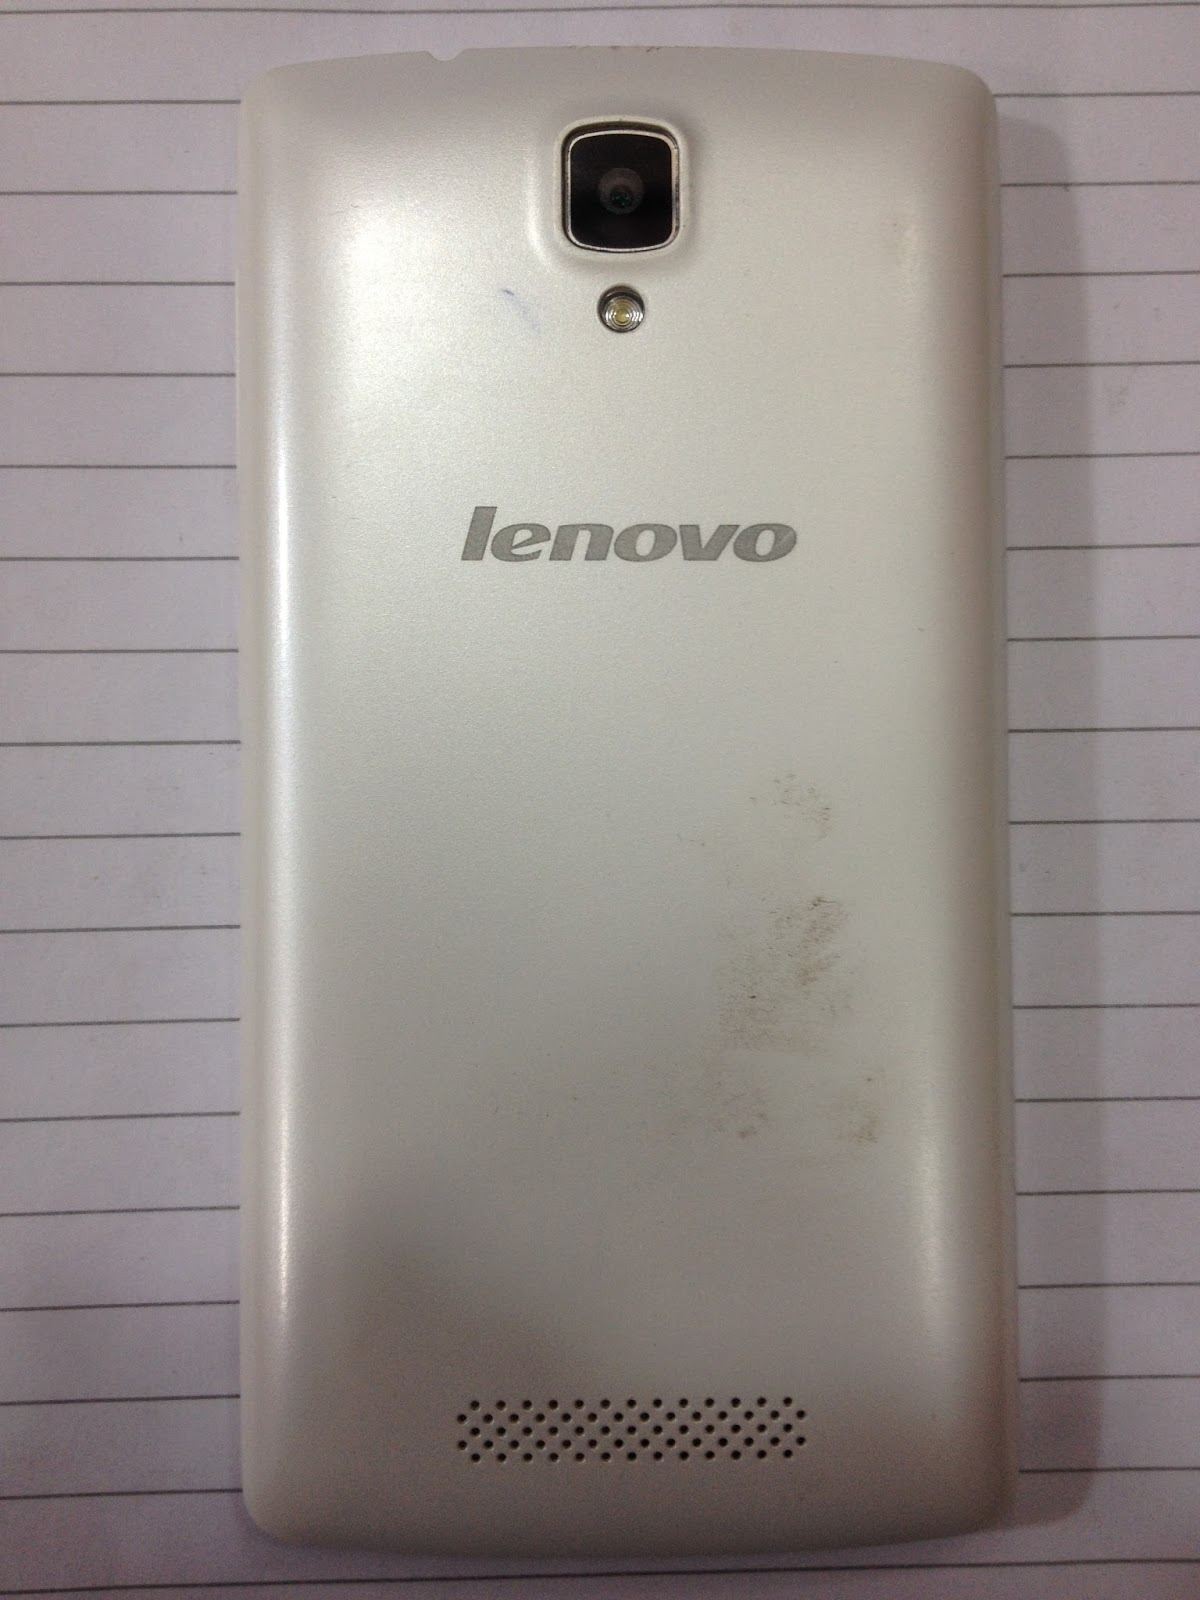 FIRMWARE ROOM ||: LENOVO A1000 S30666 / S575 FIRMWARE FLASH FILE 100